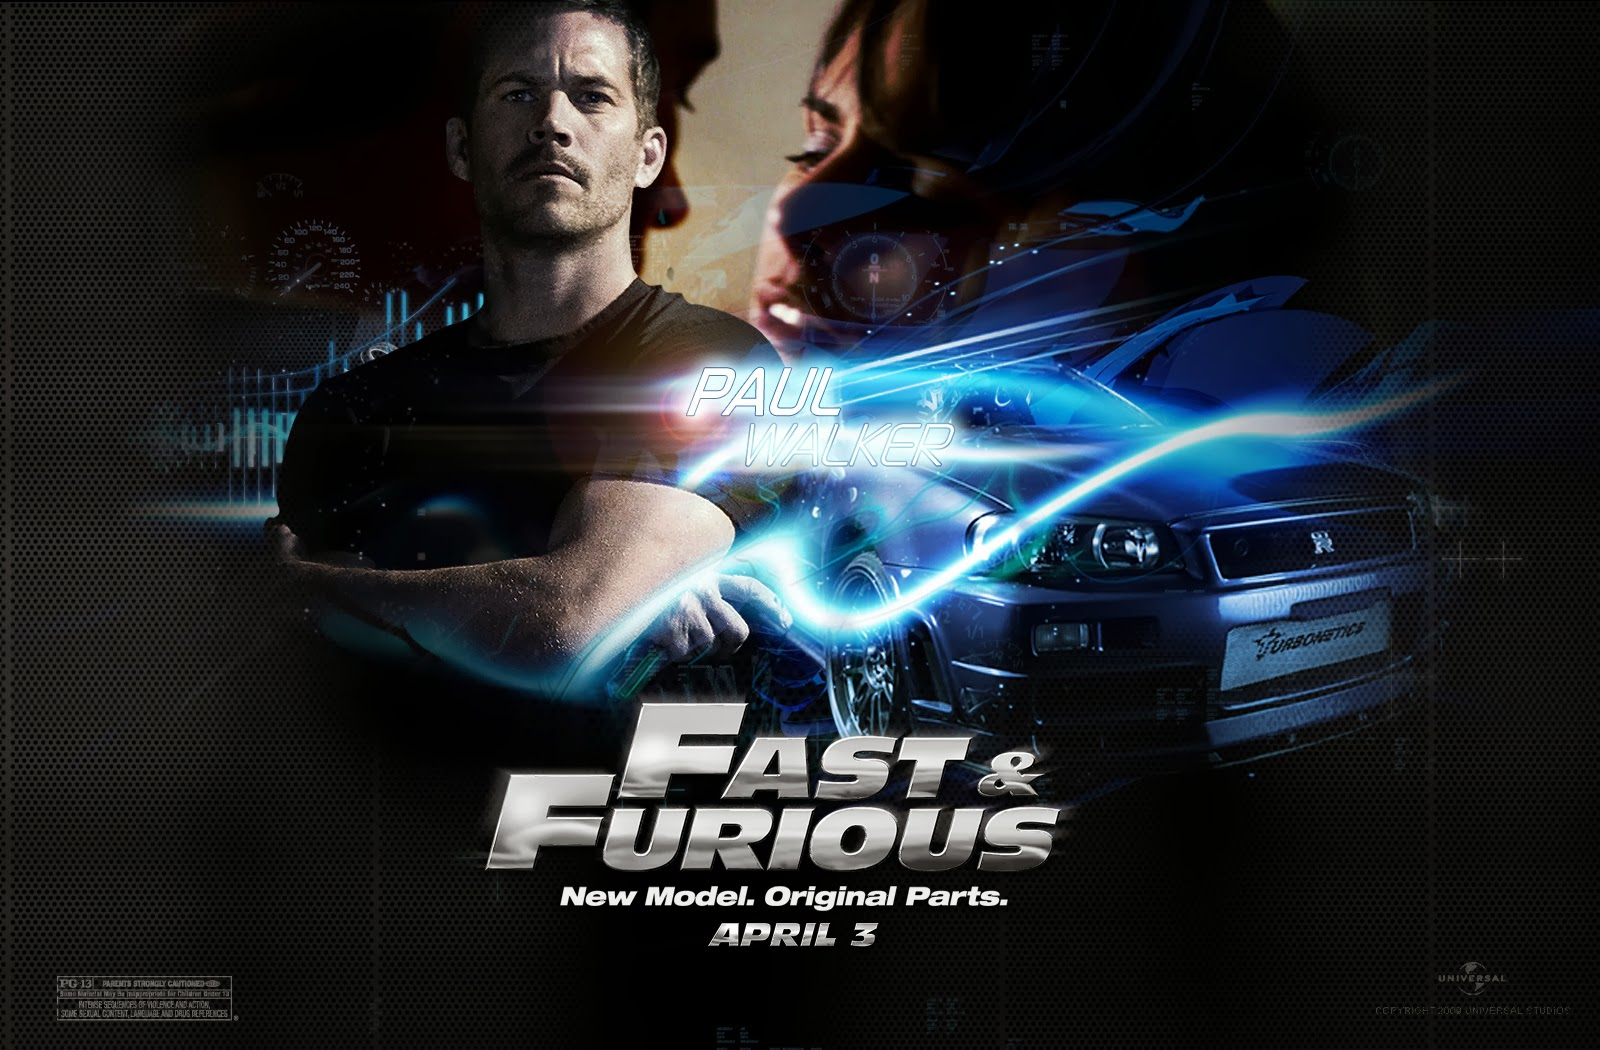 Related image with Paul Walker Death Vin Diesel Fast And Furious ...